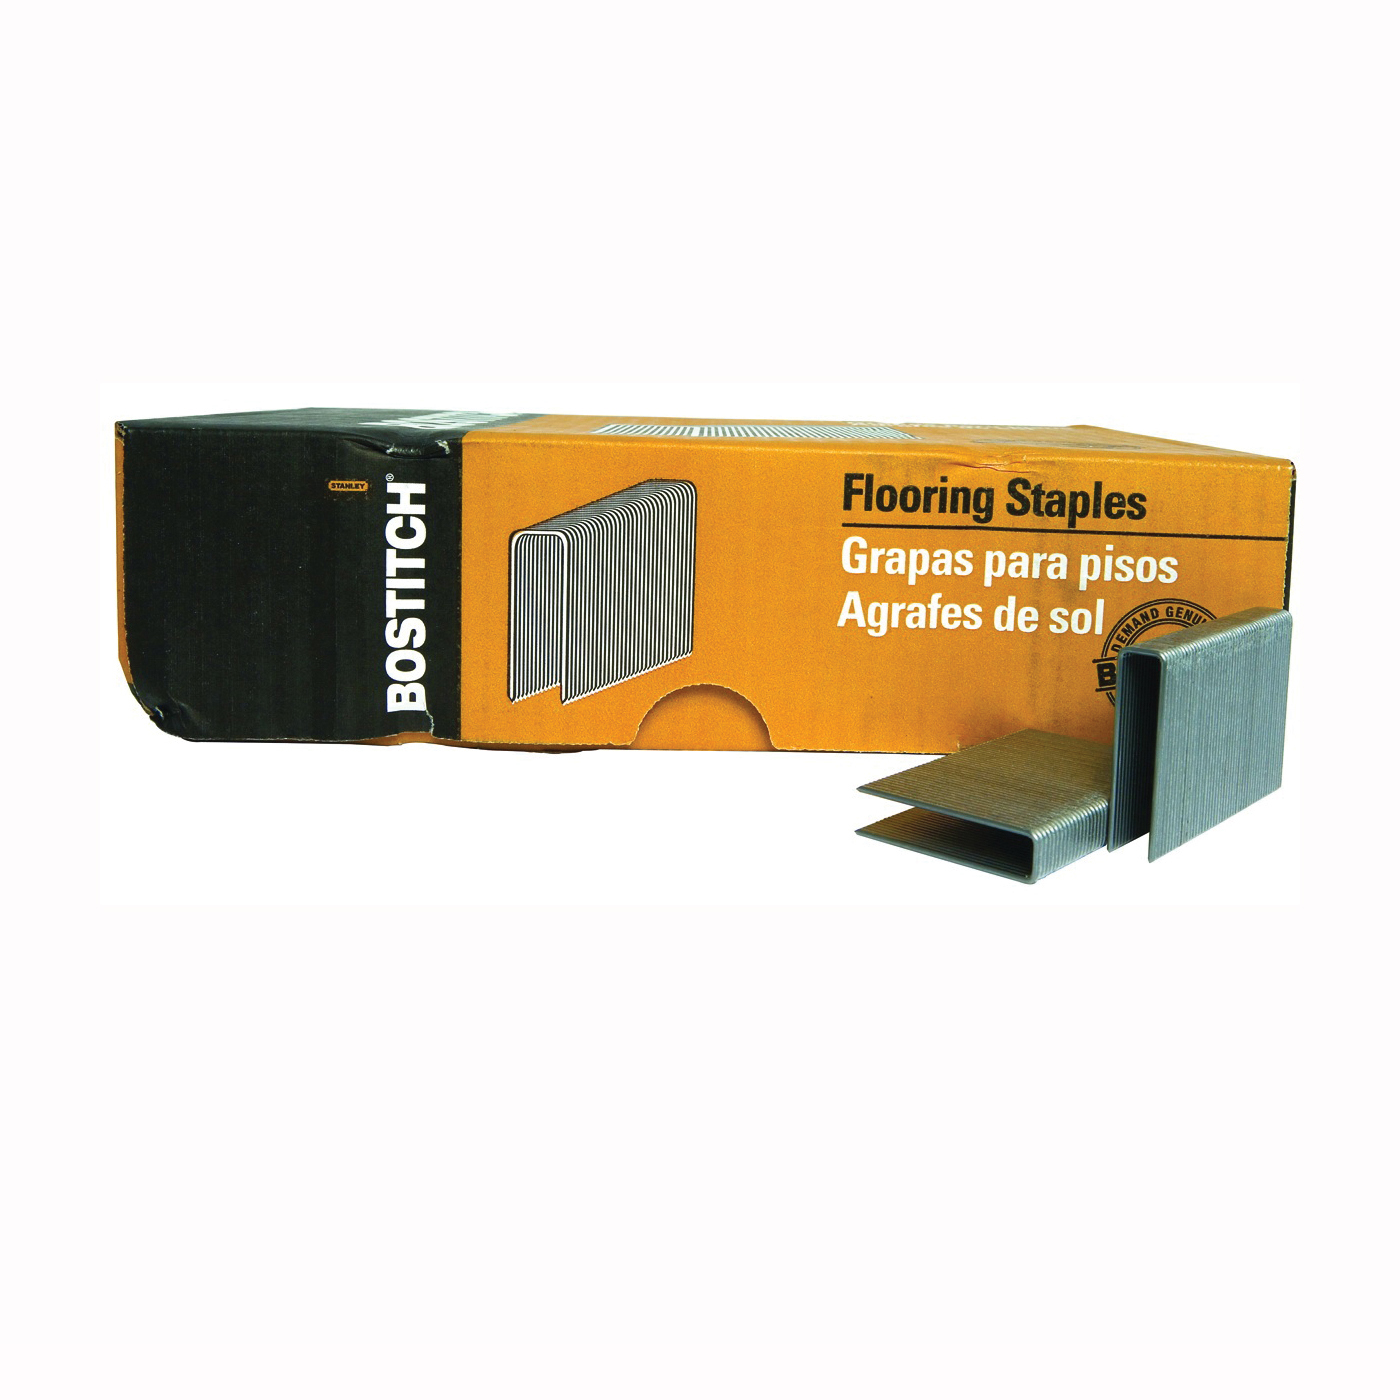 Picture of Bostitch BCS1516 Flooring Staple, 1/2 in W Crown, 2 in L Leg, 15-1/2 Gauge, Steel, 7728, Pack